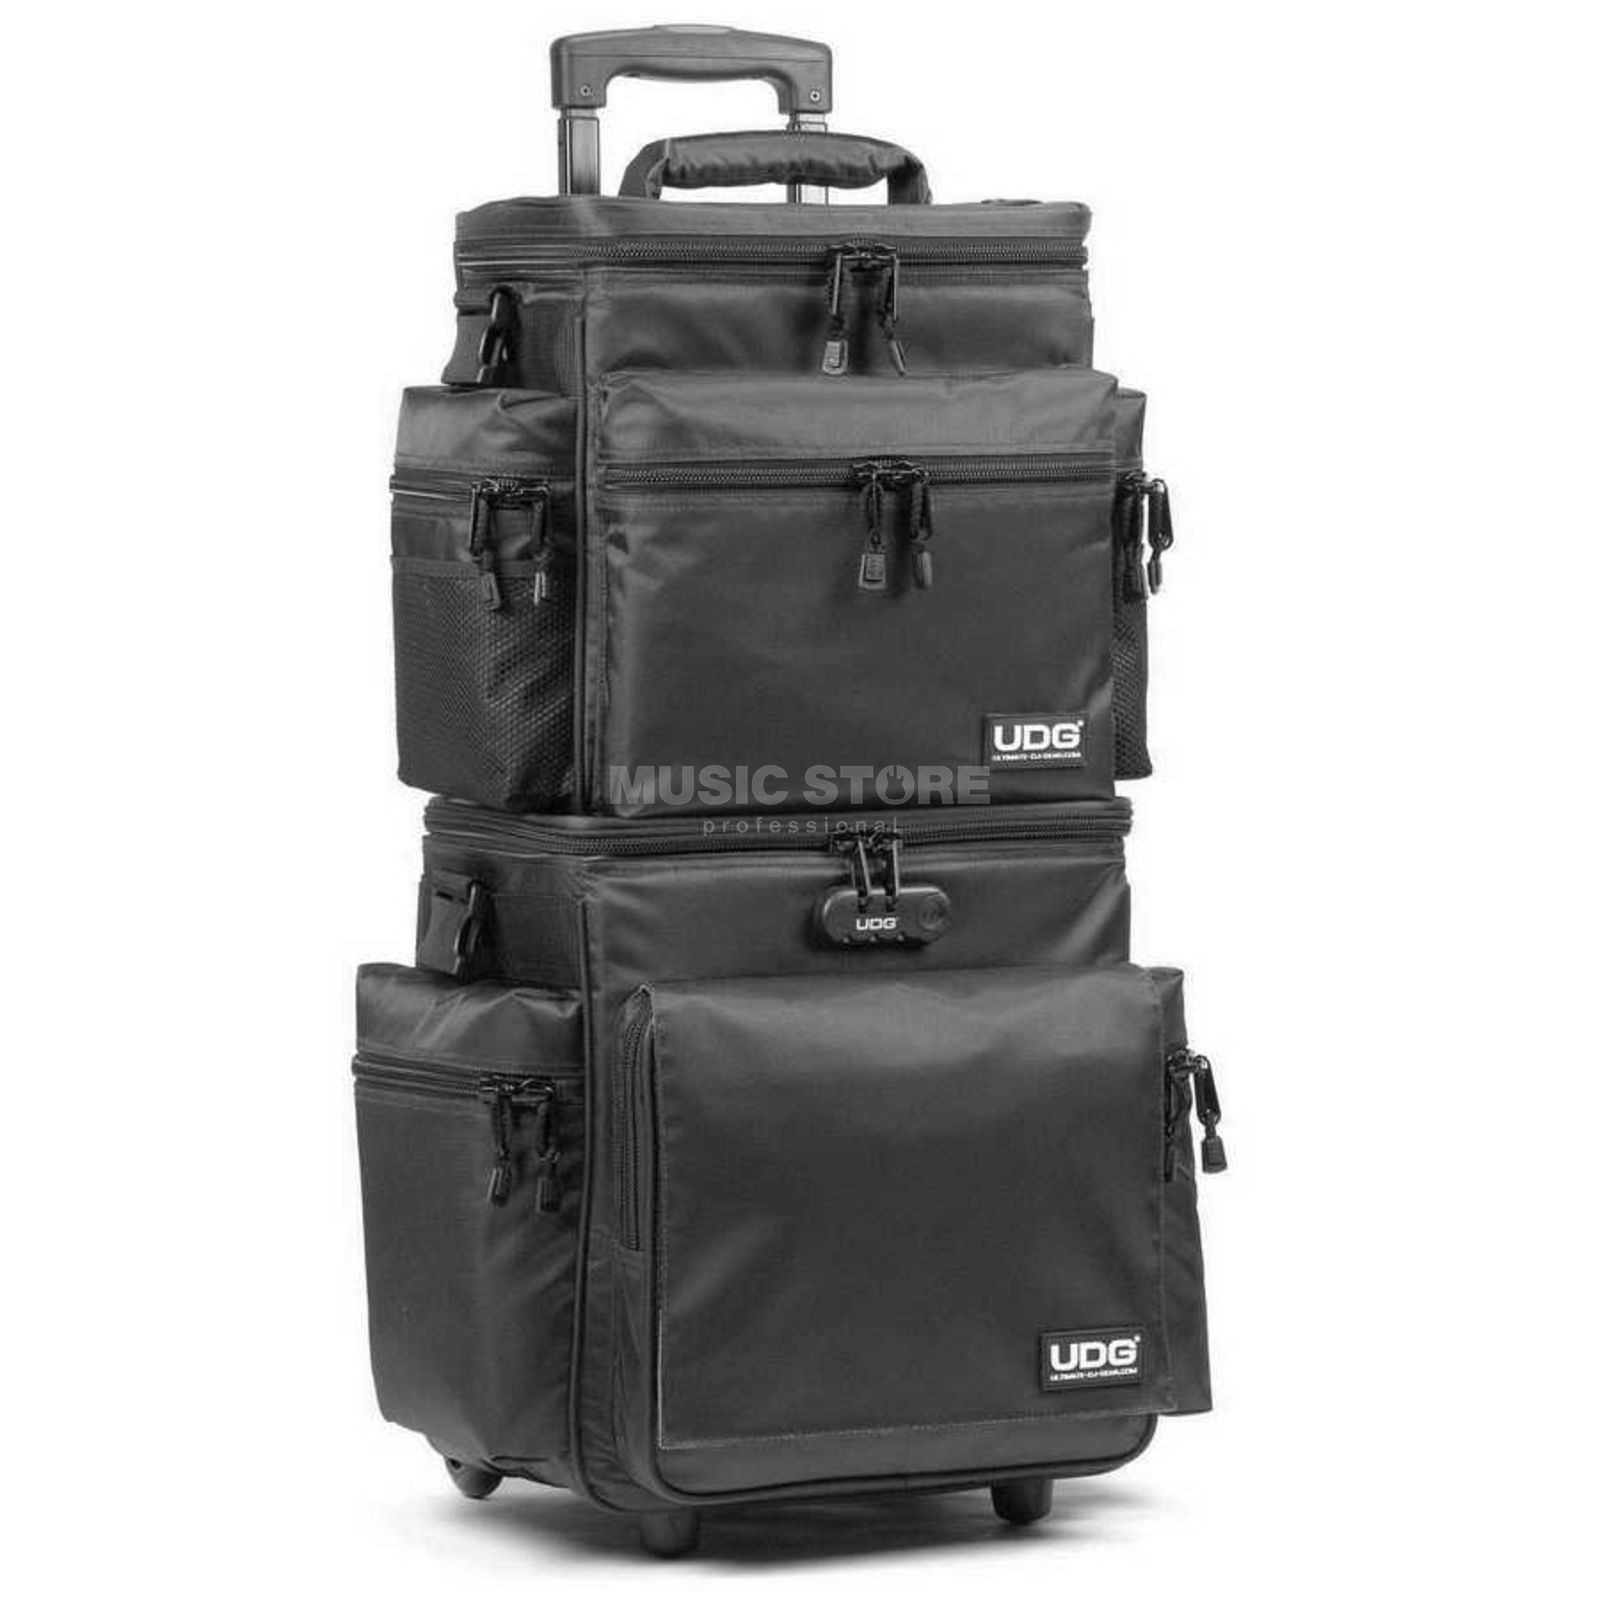 UDG Sling Bag Trolley Set Deluxe black/orange inside U9679BL/OR Image du produit